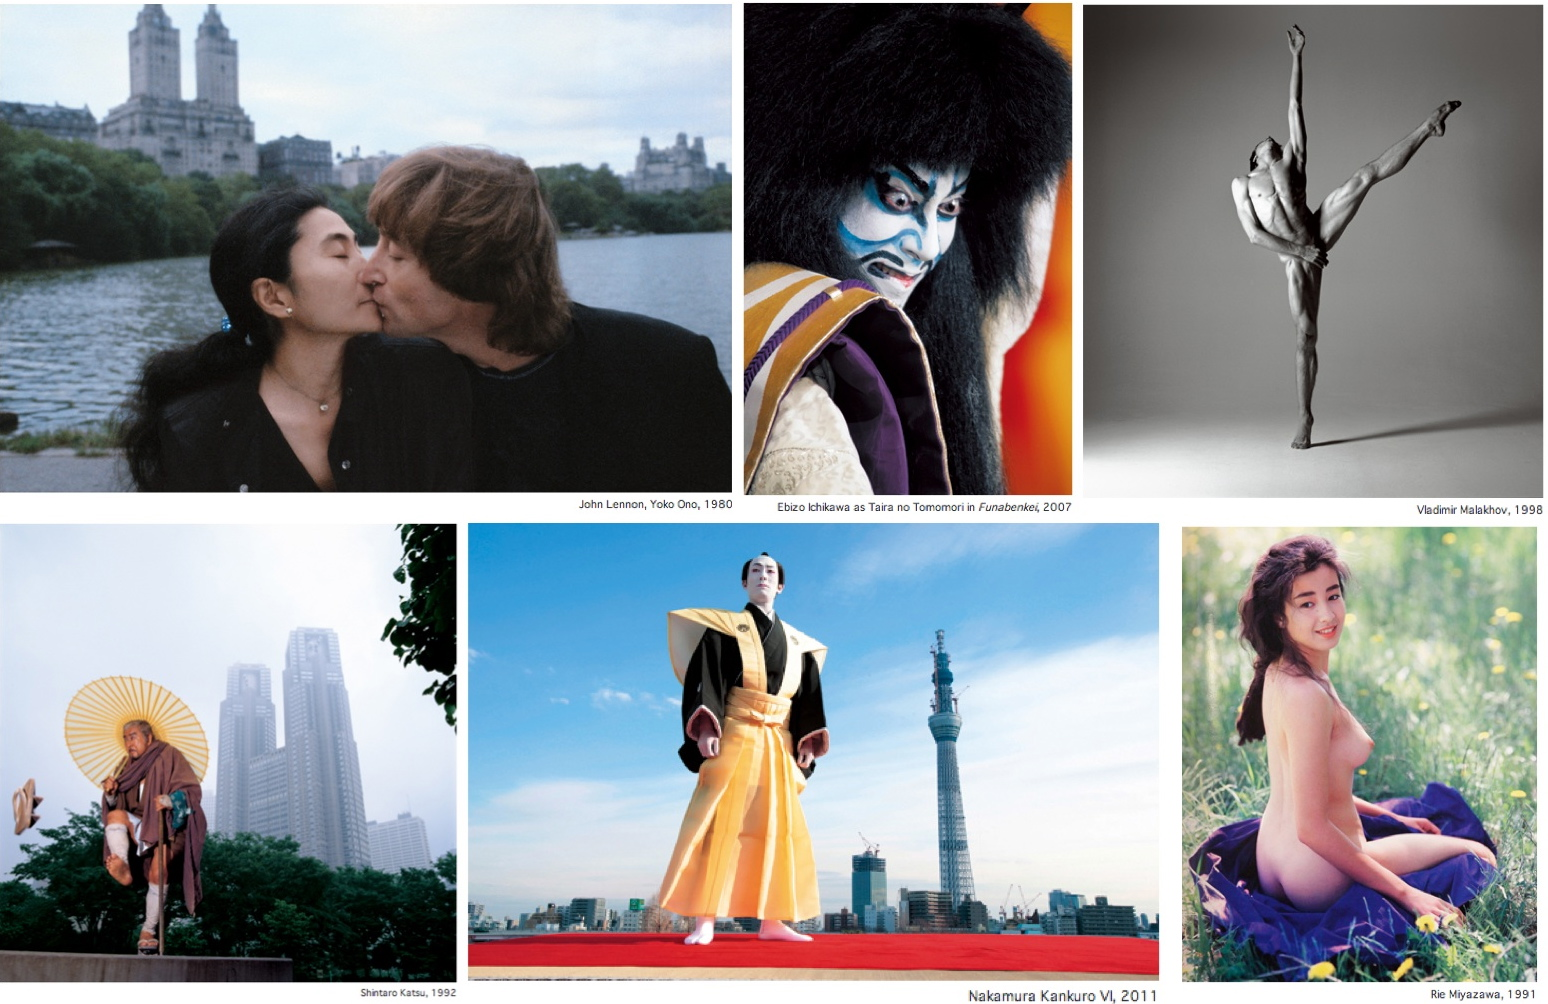 PHOTOS THE PEOPLE by KISHIN SHINOYAMA THE PEOPLE BY KISHIN SHINOYAMA EXHIBITION